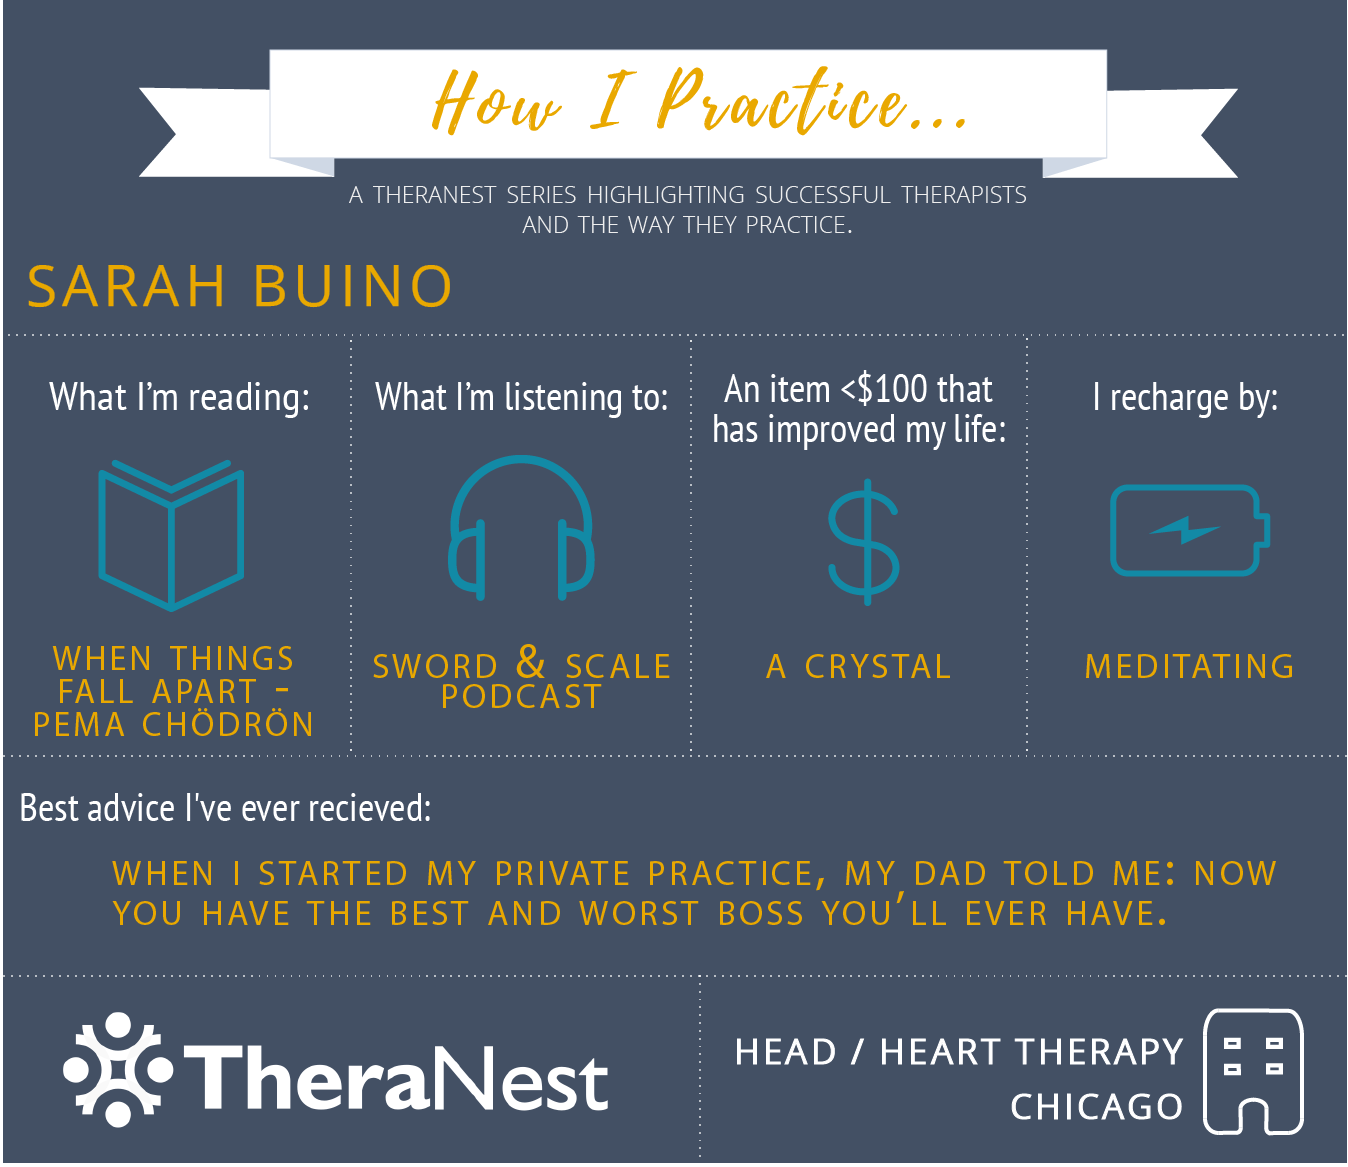 How I Practice Infographic - Sarah Buino | TheraNest Blog